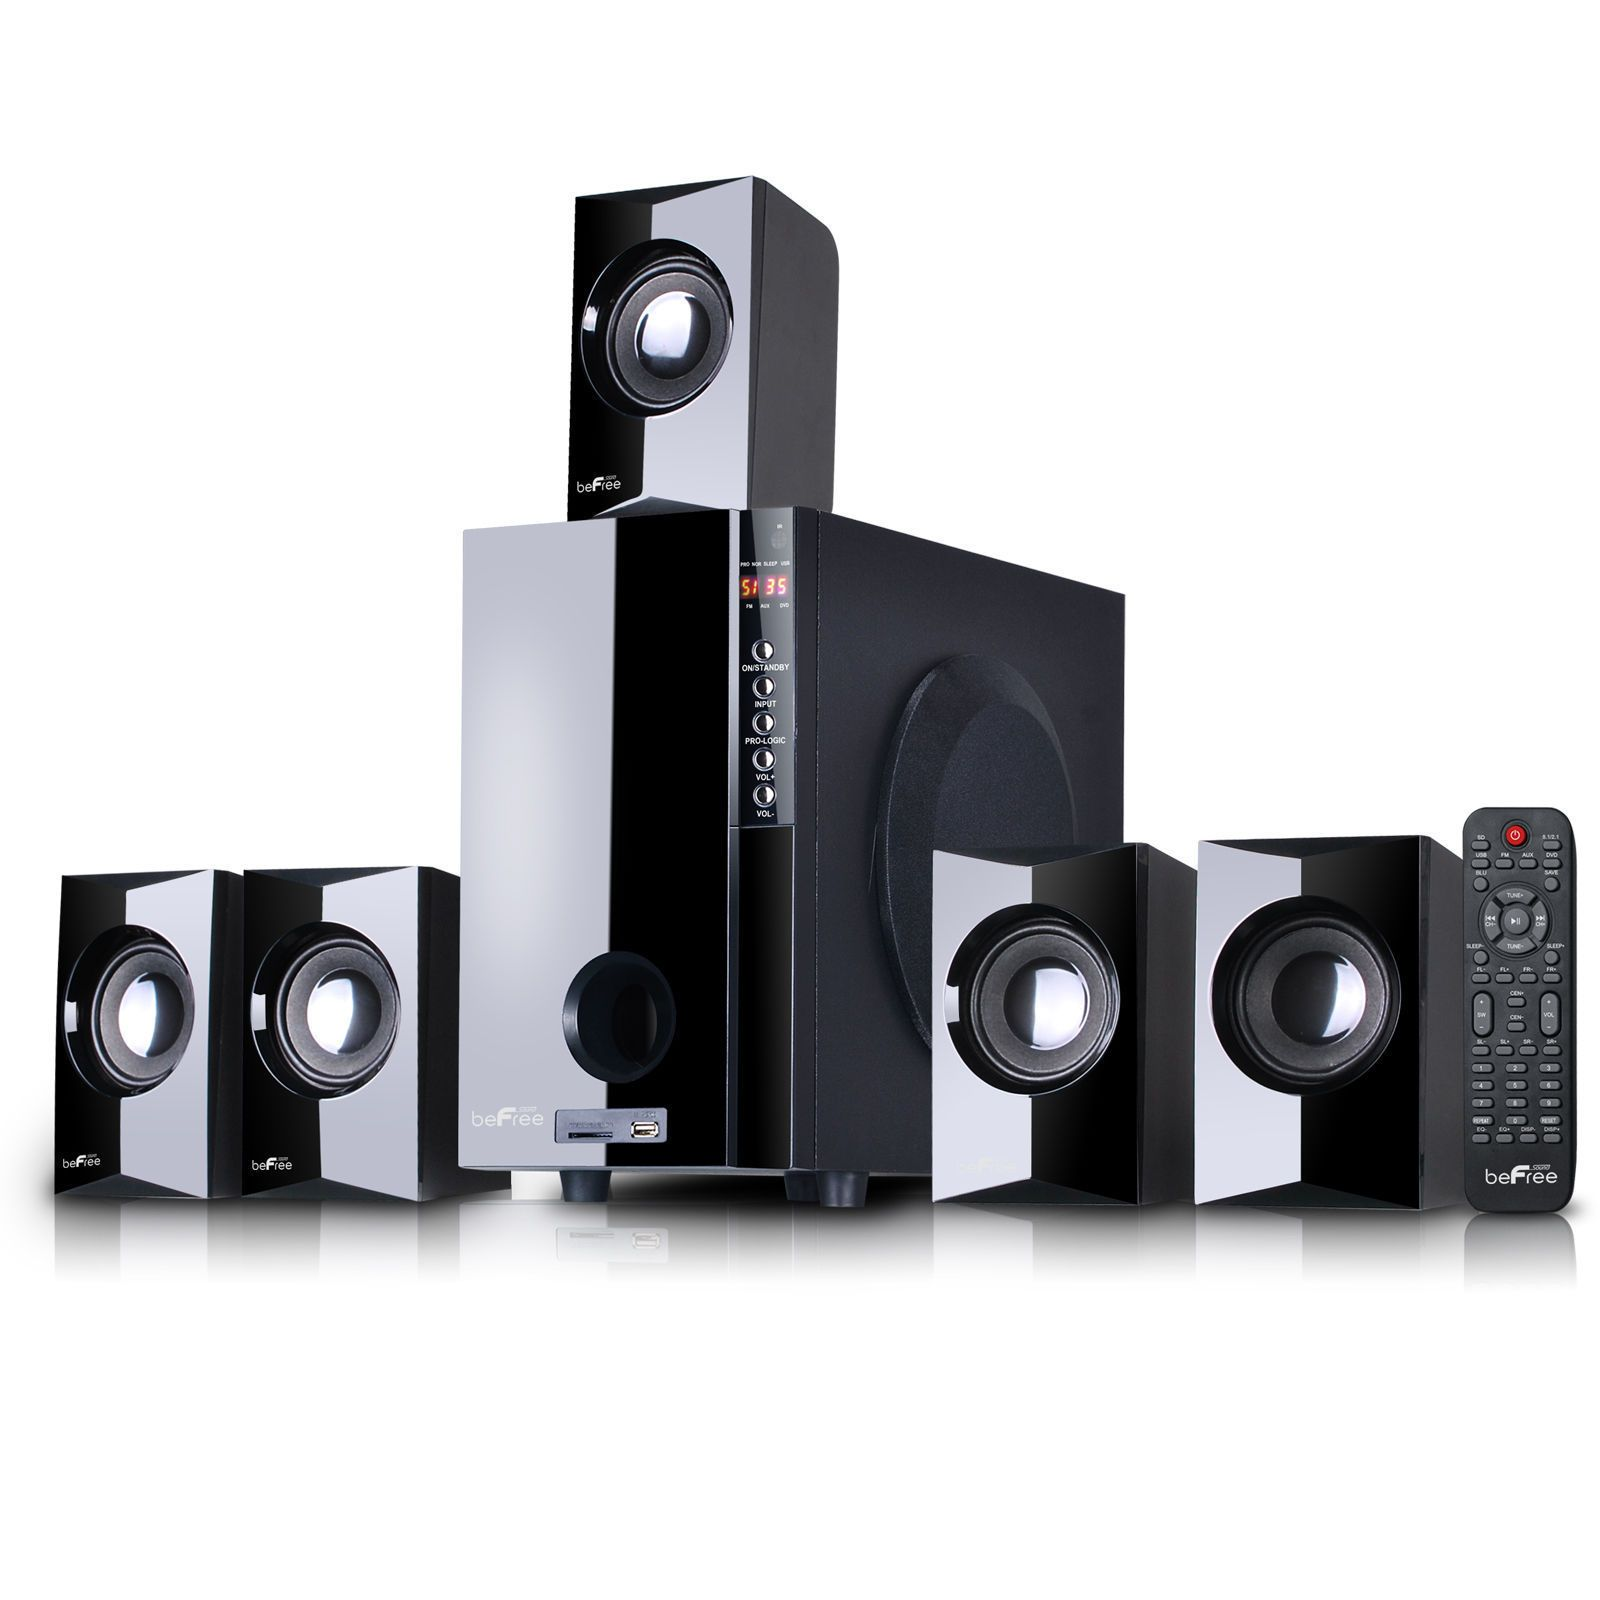 Befree sound channel surround bluetoot speaker system amplifier  speakers output frequency   features usb sd fm bluetooth remote also home theater systems rh pinterest